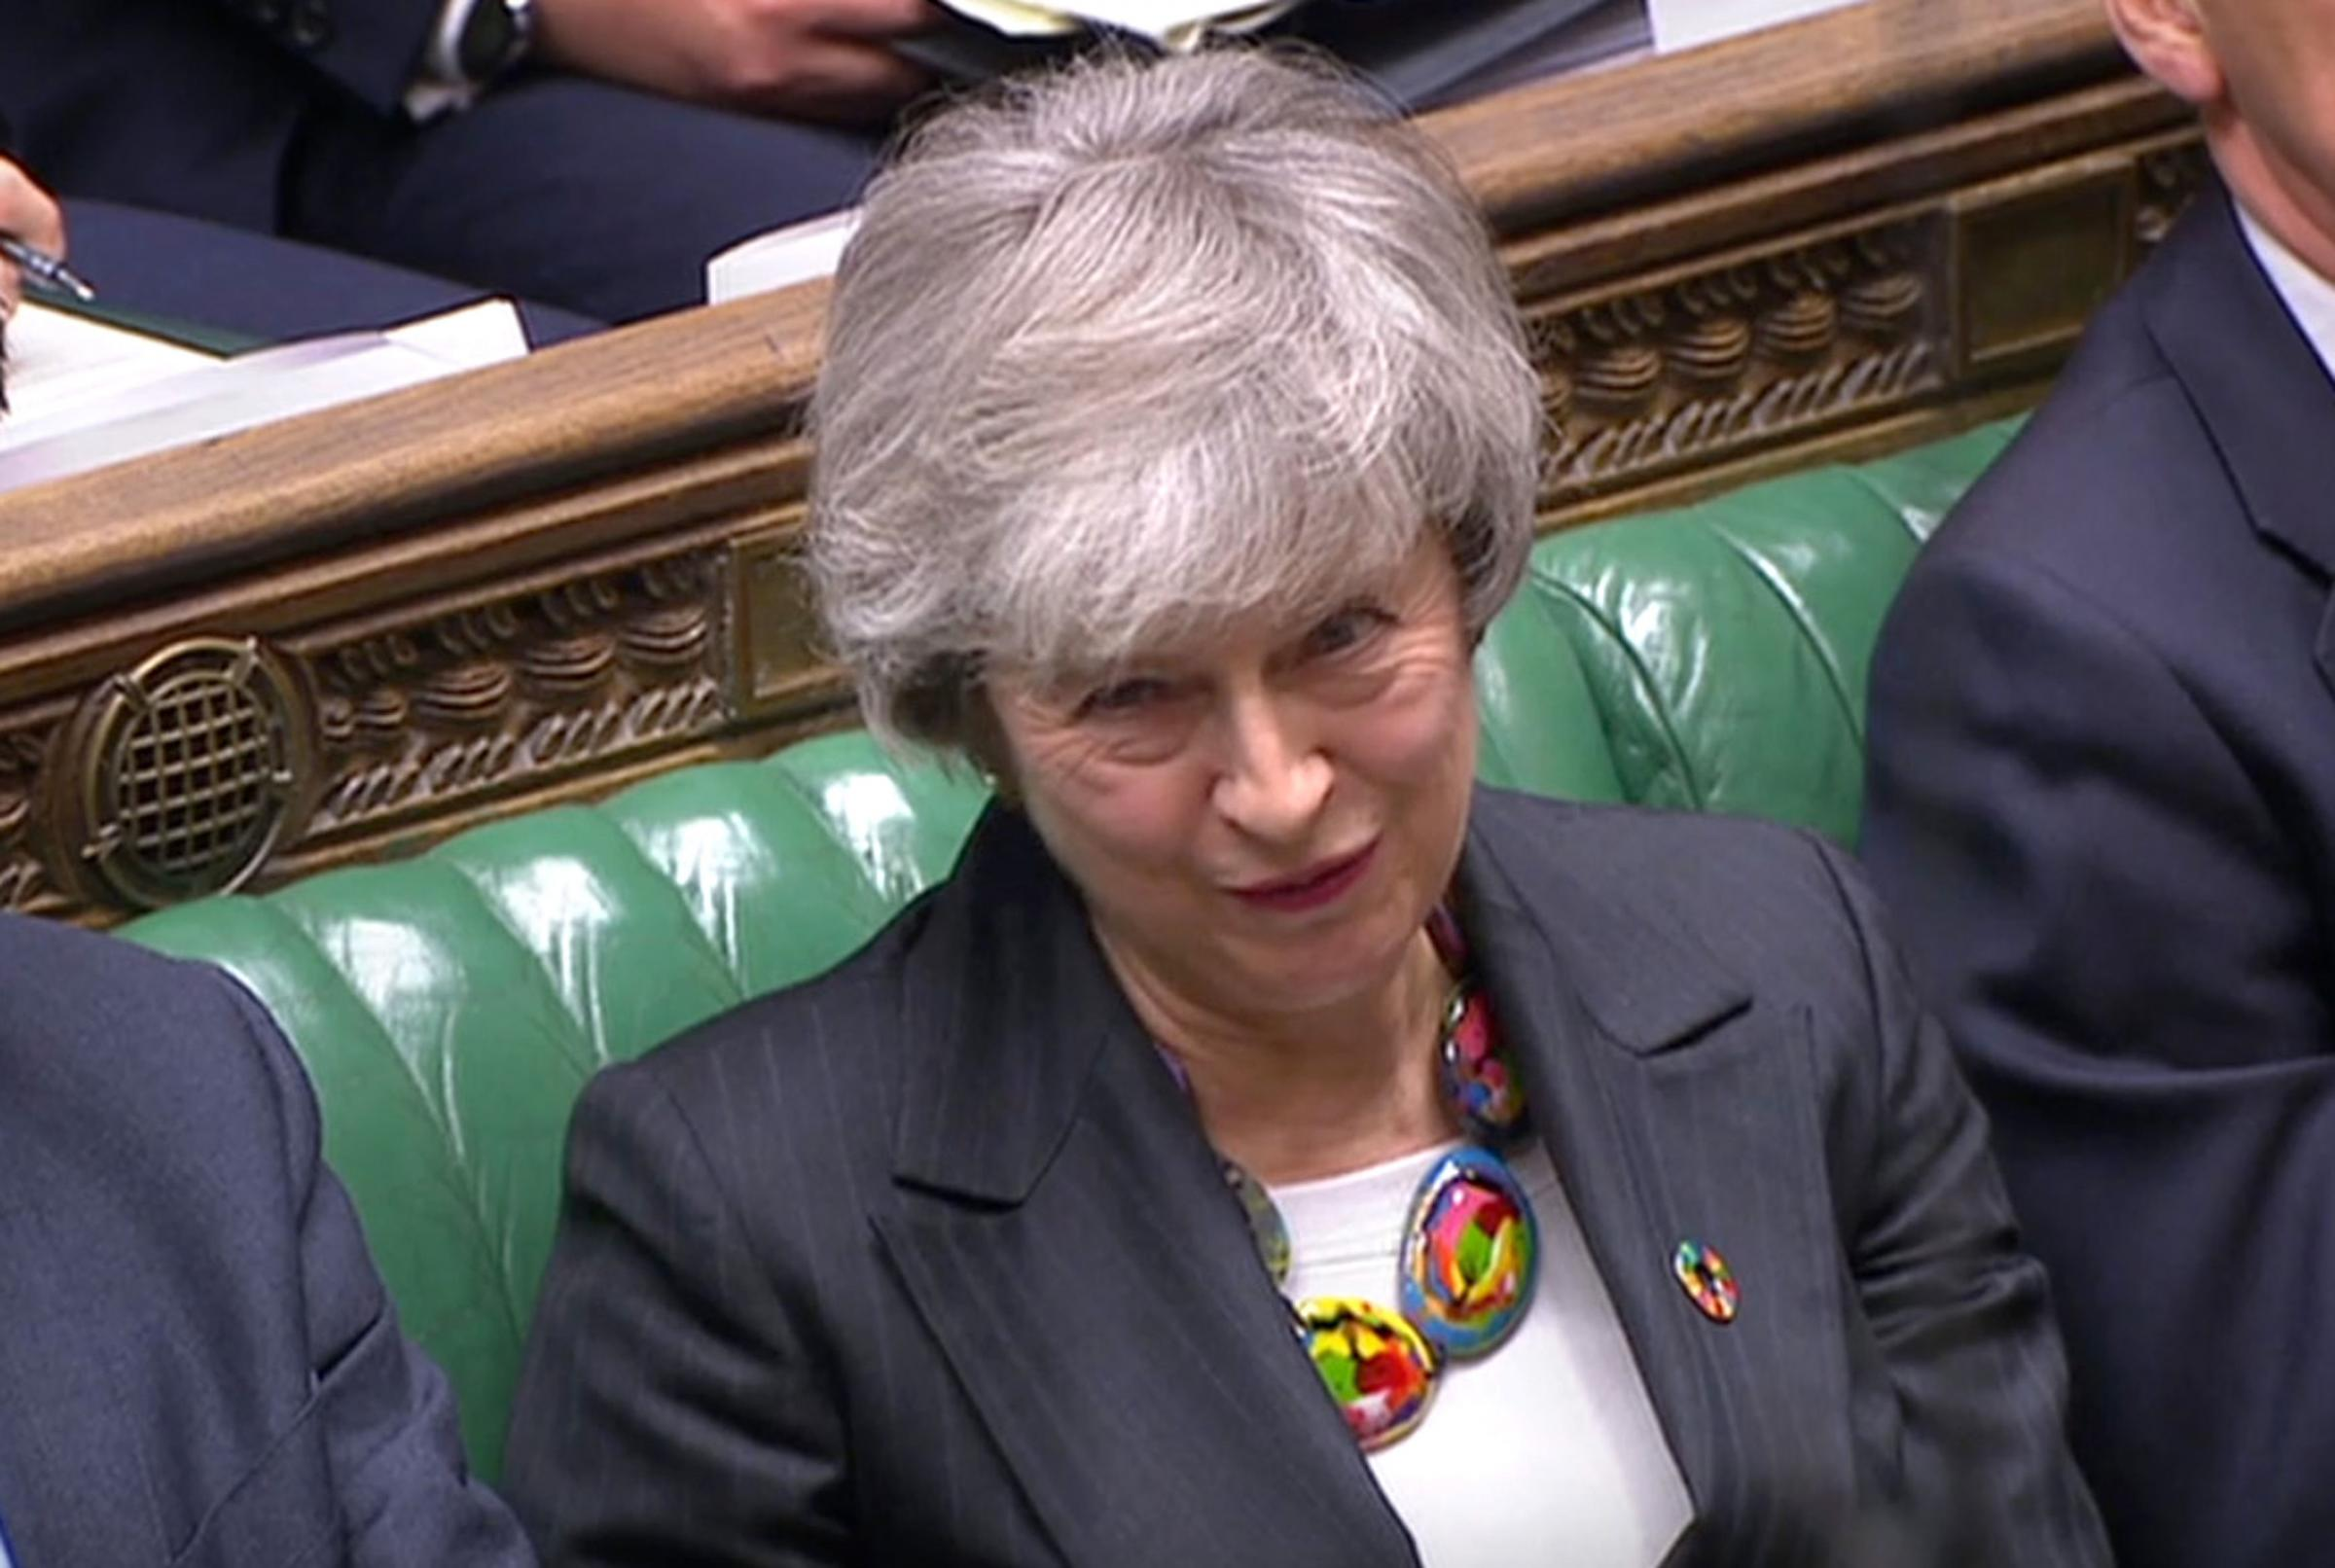 Prime Minister Theresa May made a nonsense claim during PMQs